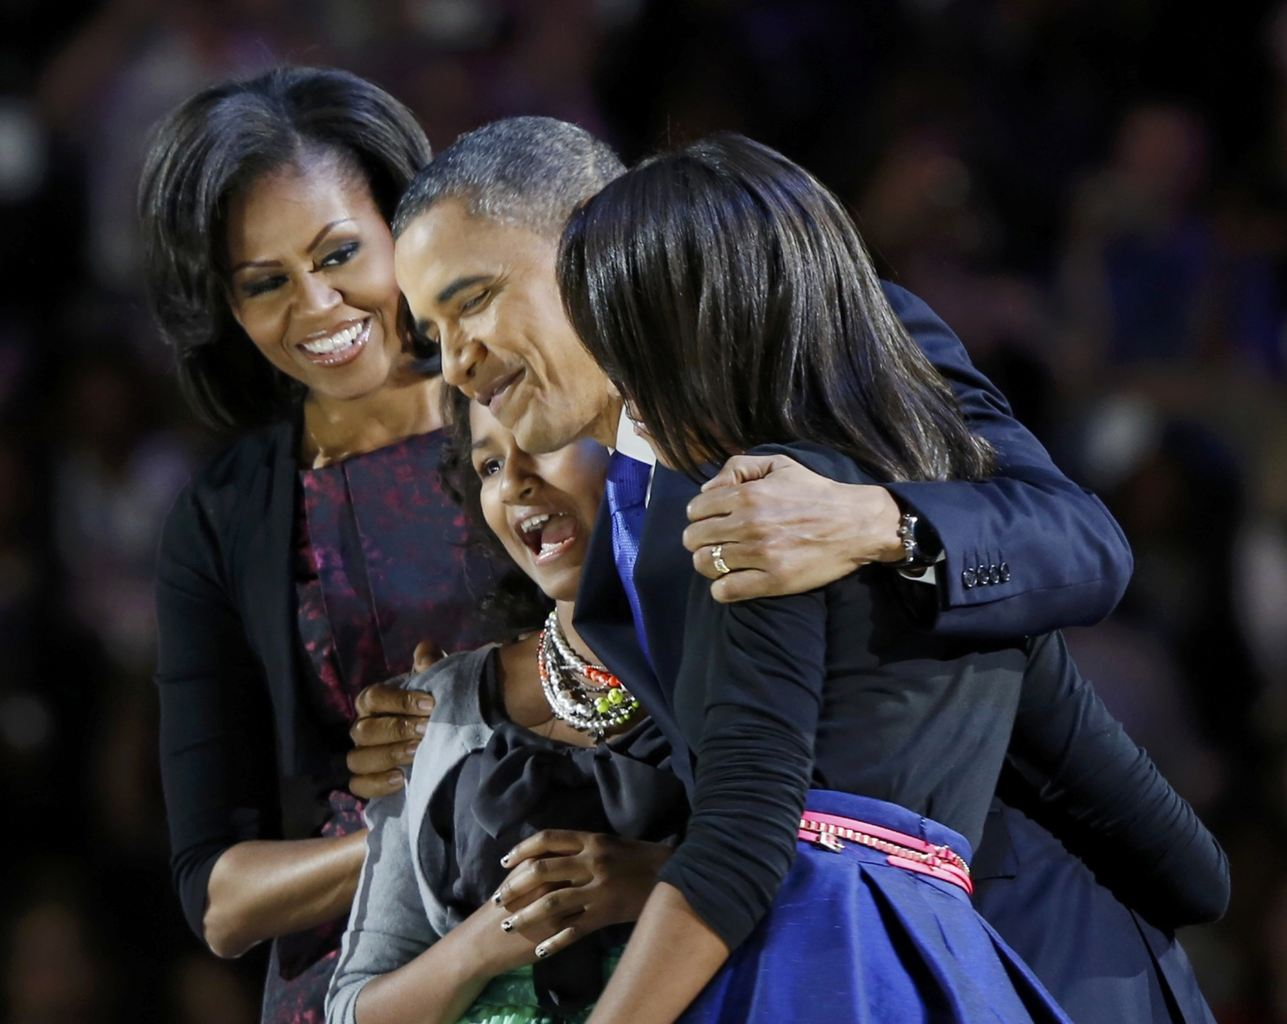 The Obamas celebrating the President's re-election.